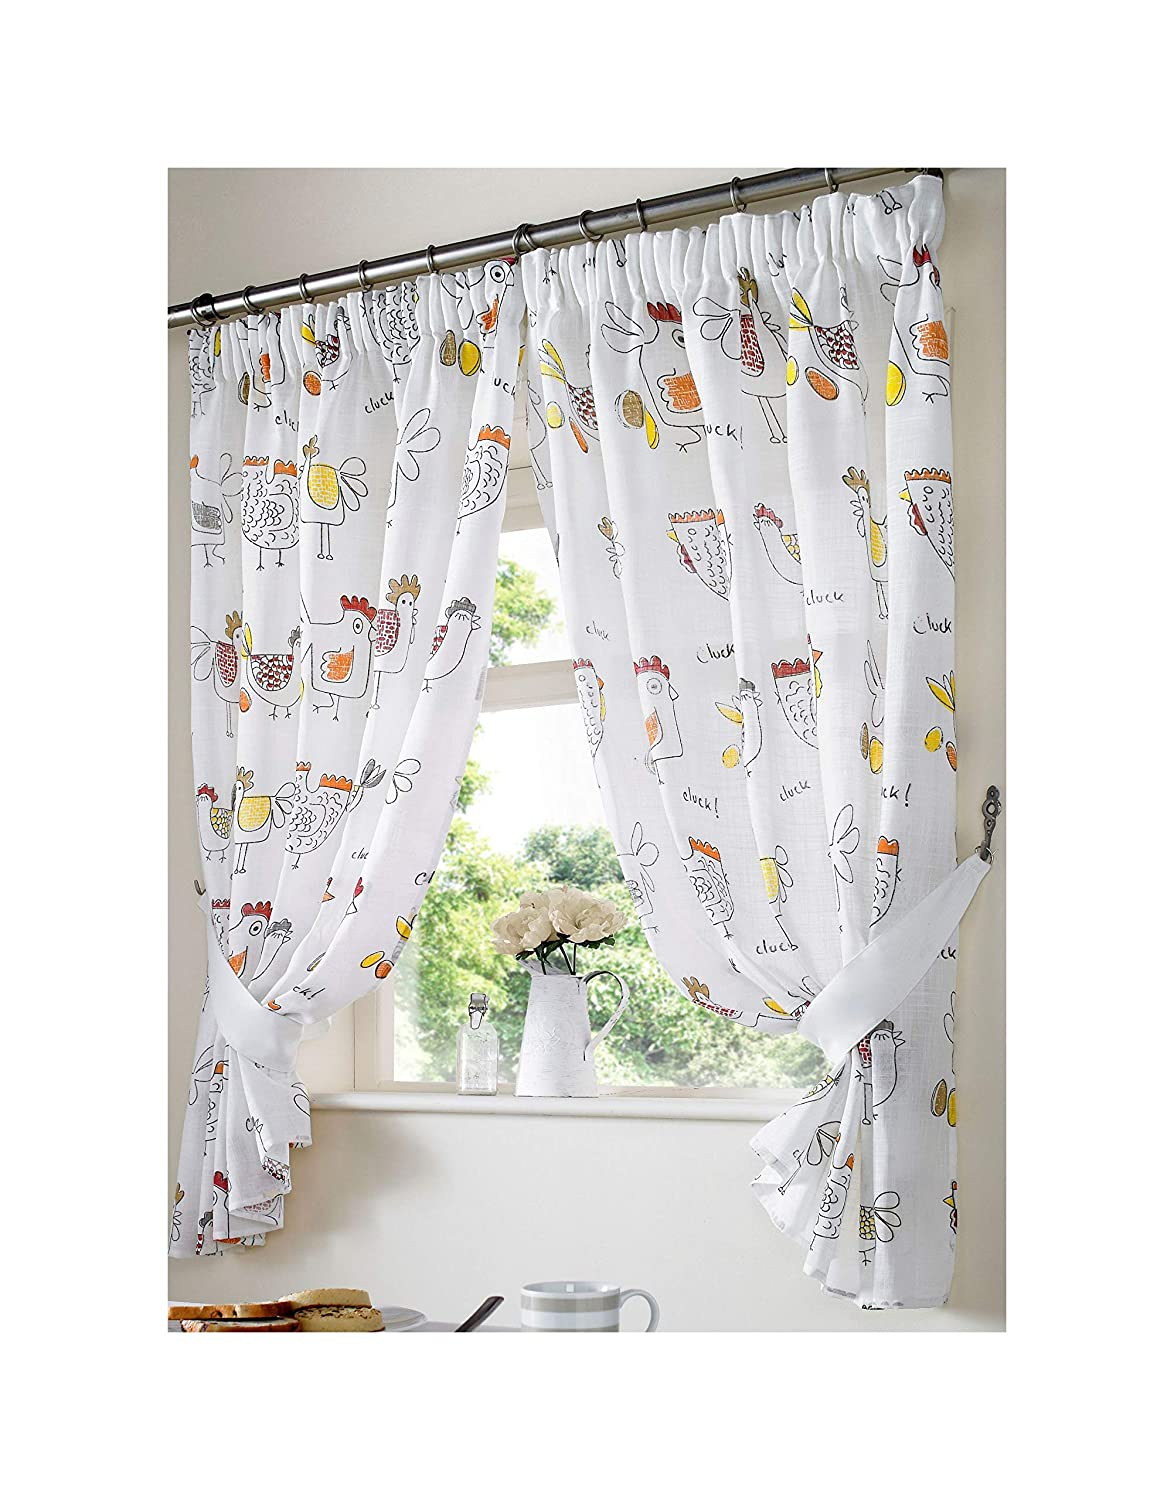 Alan Symonds Clearance Kitchen Curtains Various sizes and designs 46